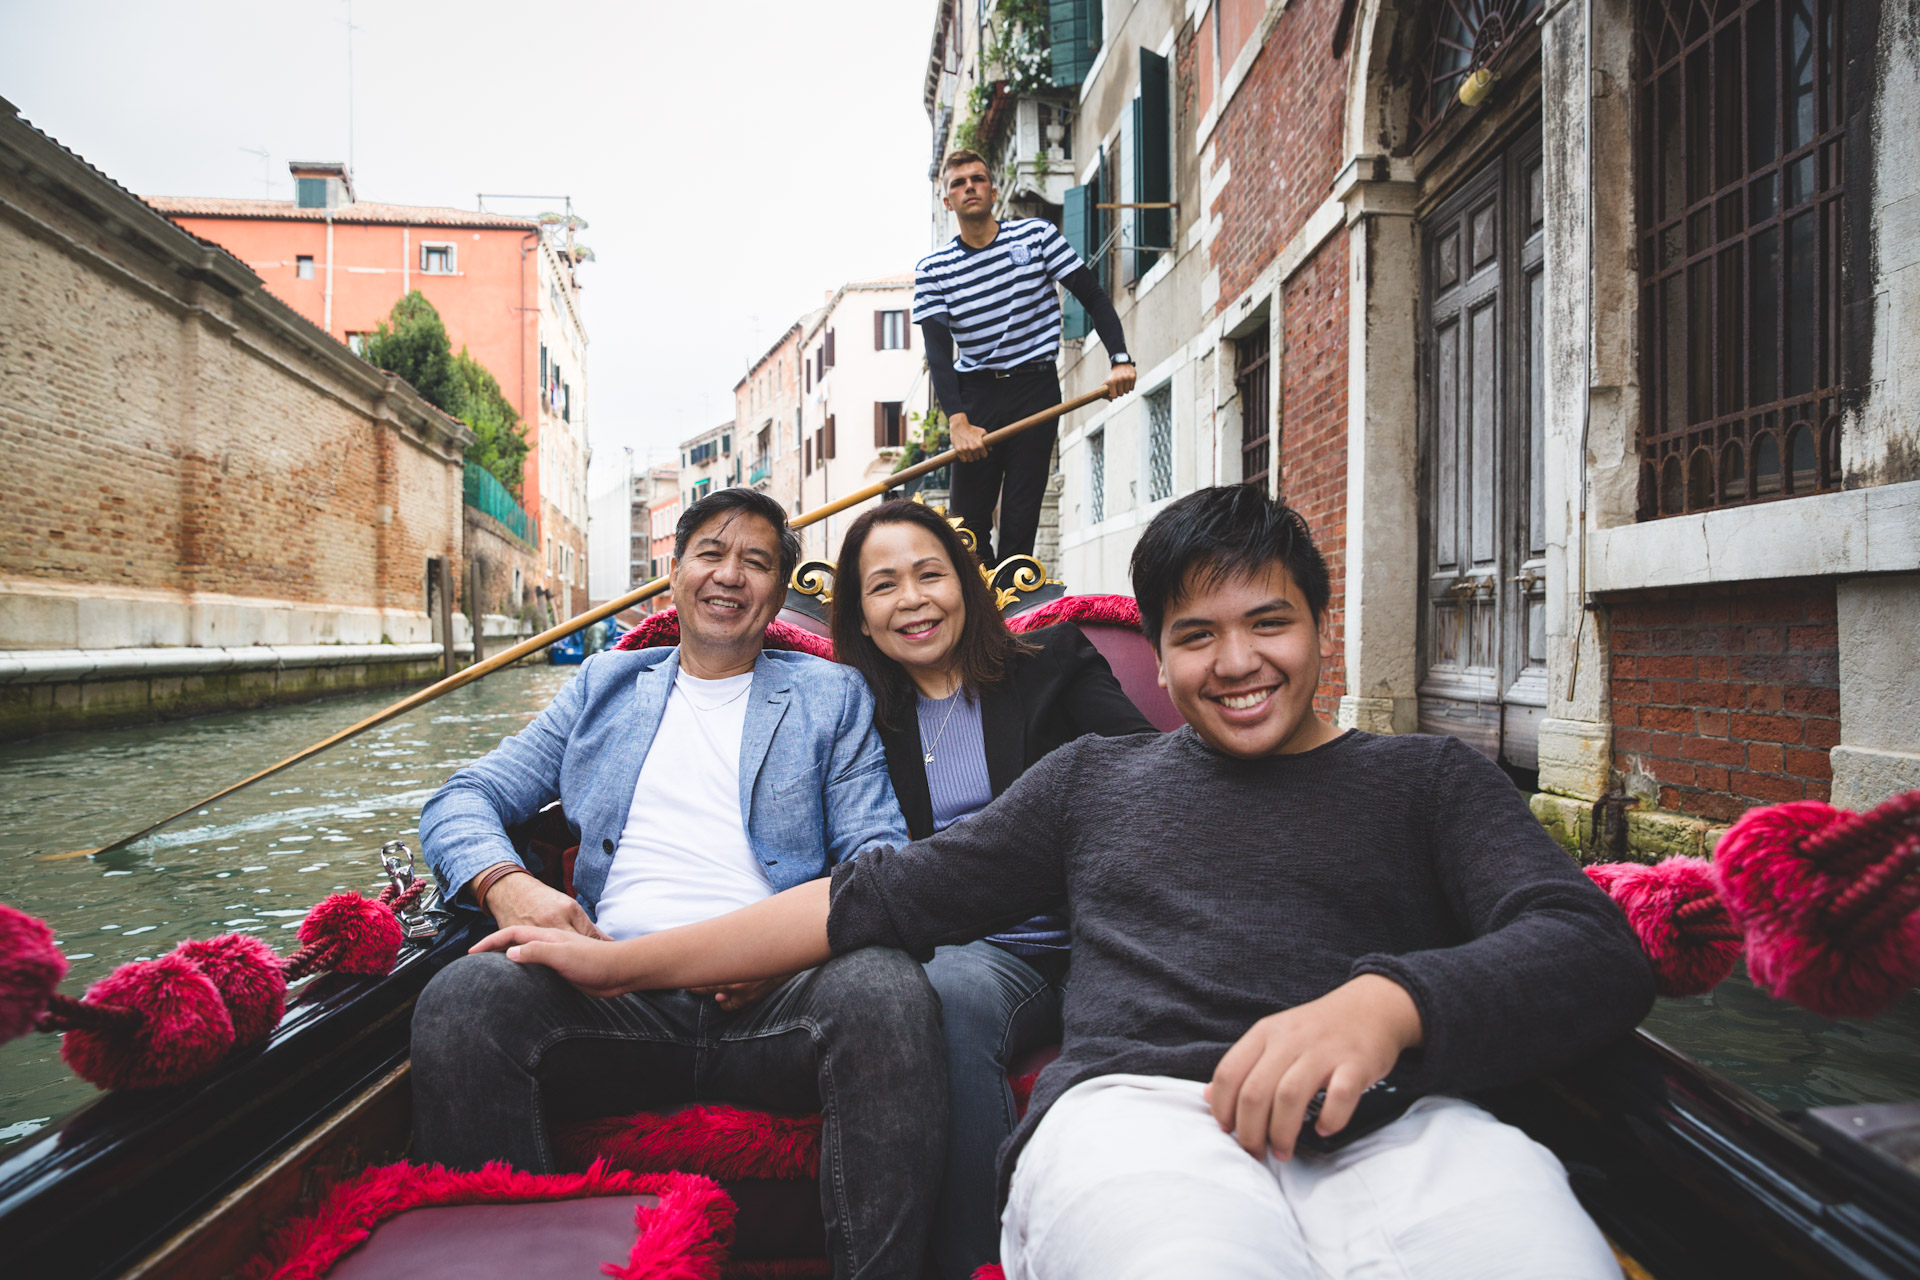 Jo Anne-family-portrait-photo-shooting-sunrise-gondola-ride-Venezia-Venice-1